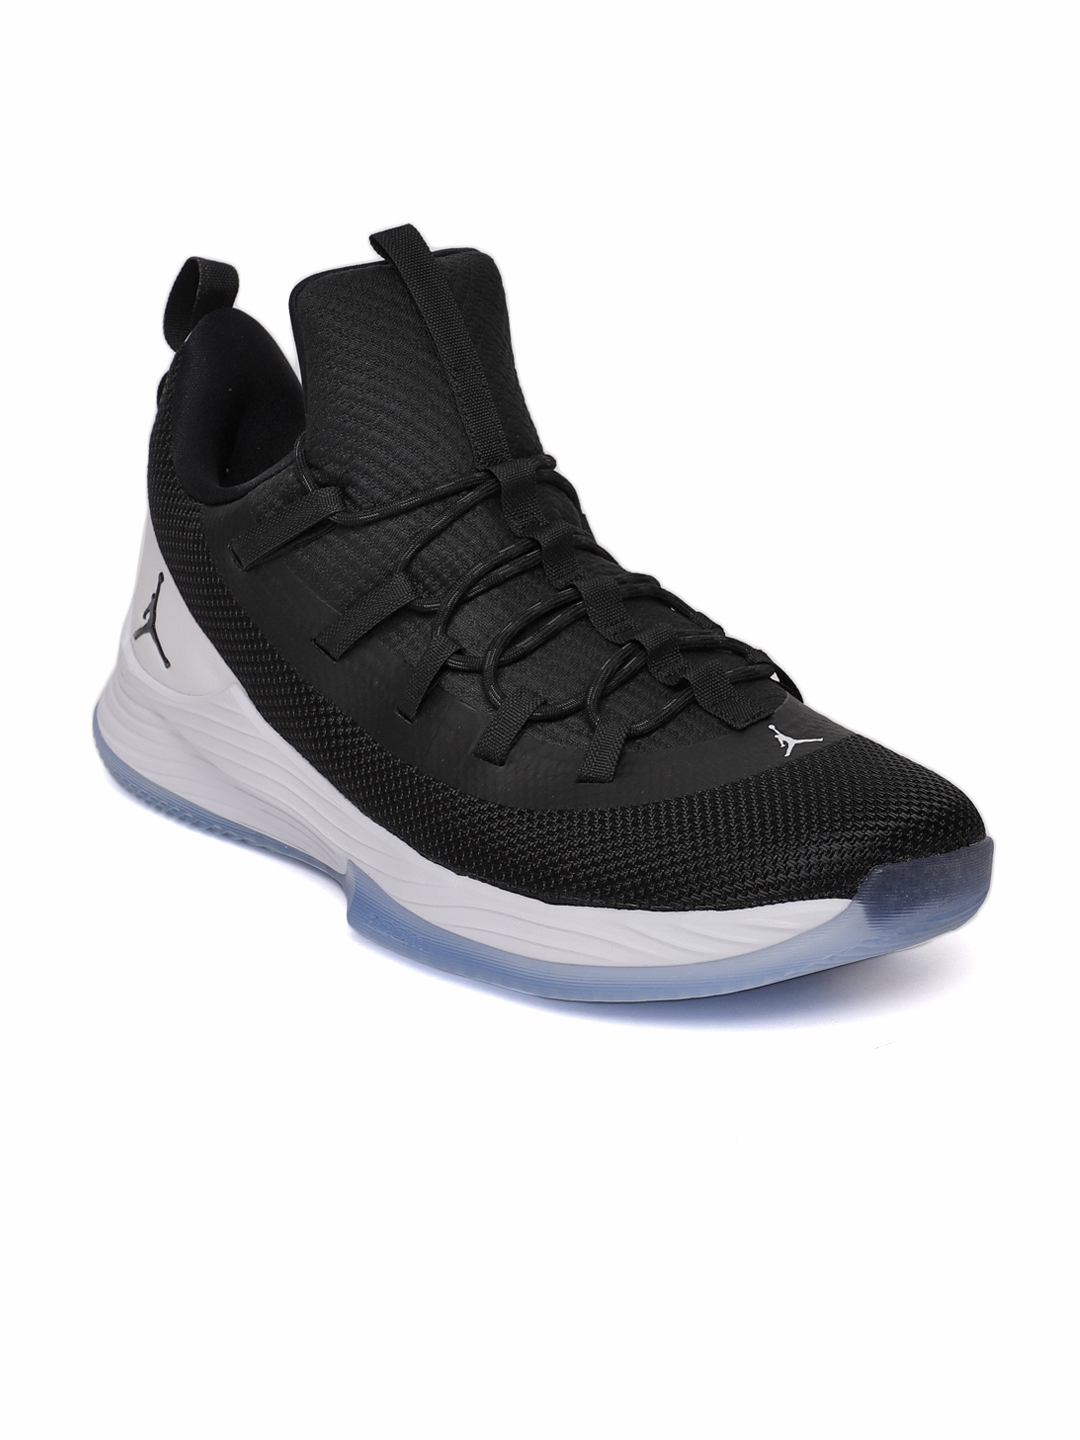 722d77d17ed8a Buy Nike Men Black   White Jordan Ultra Fly 2 Low Basketball Shoes ...